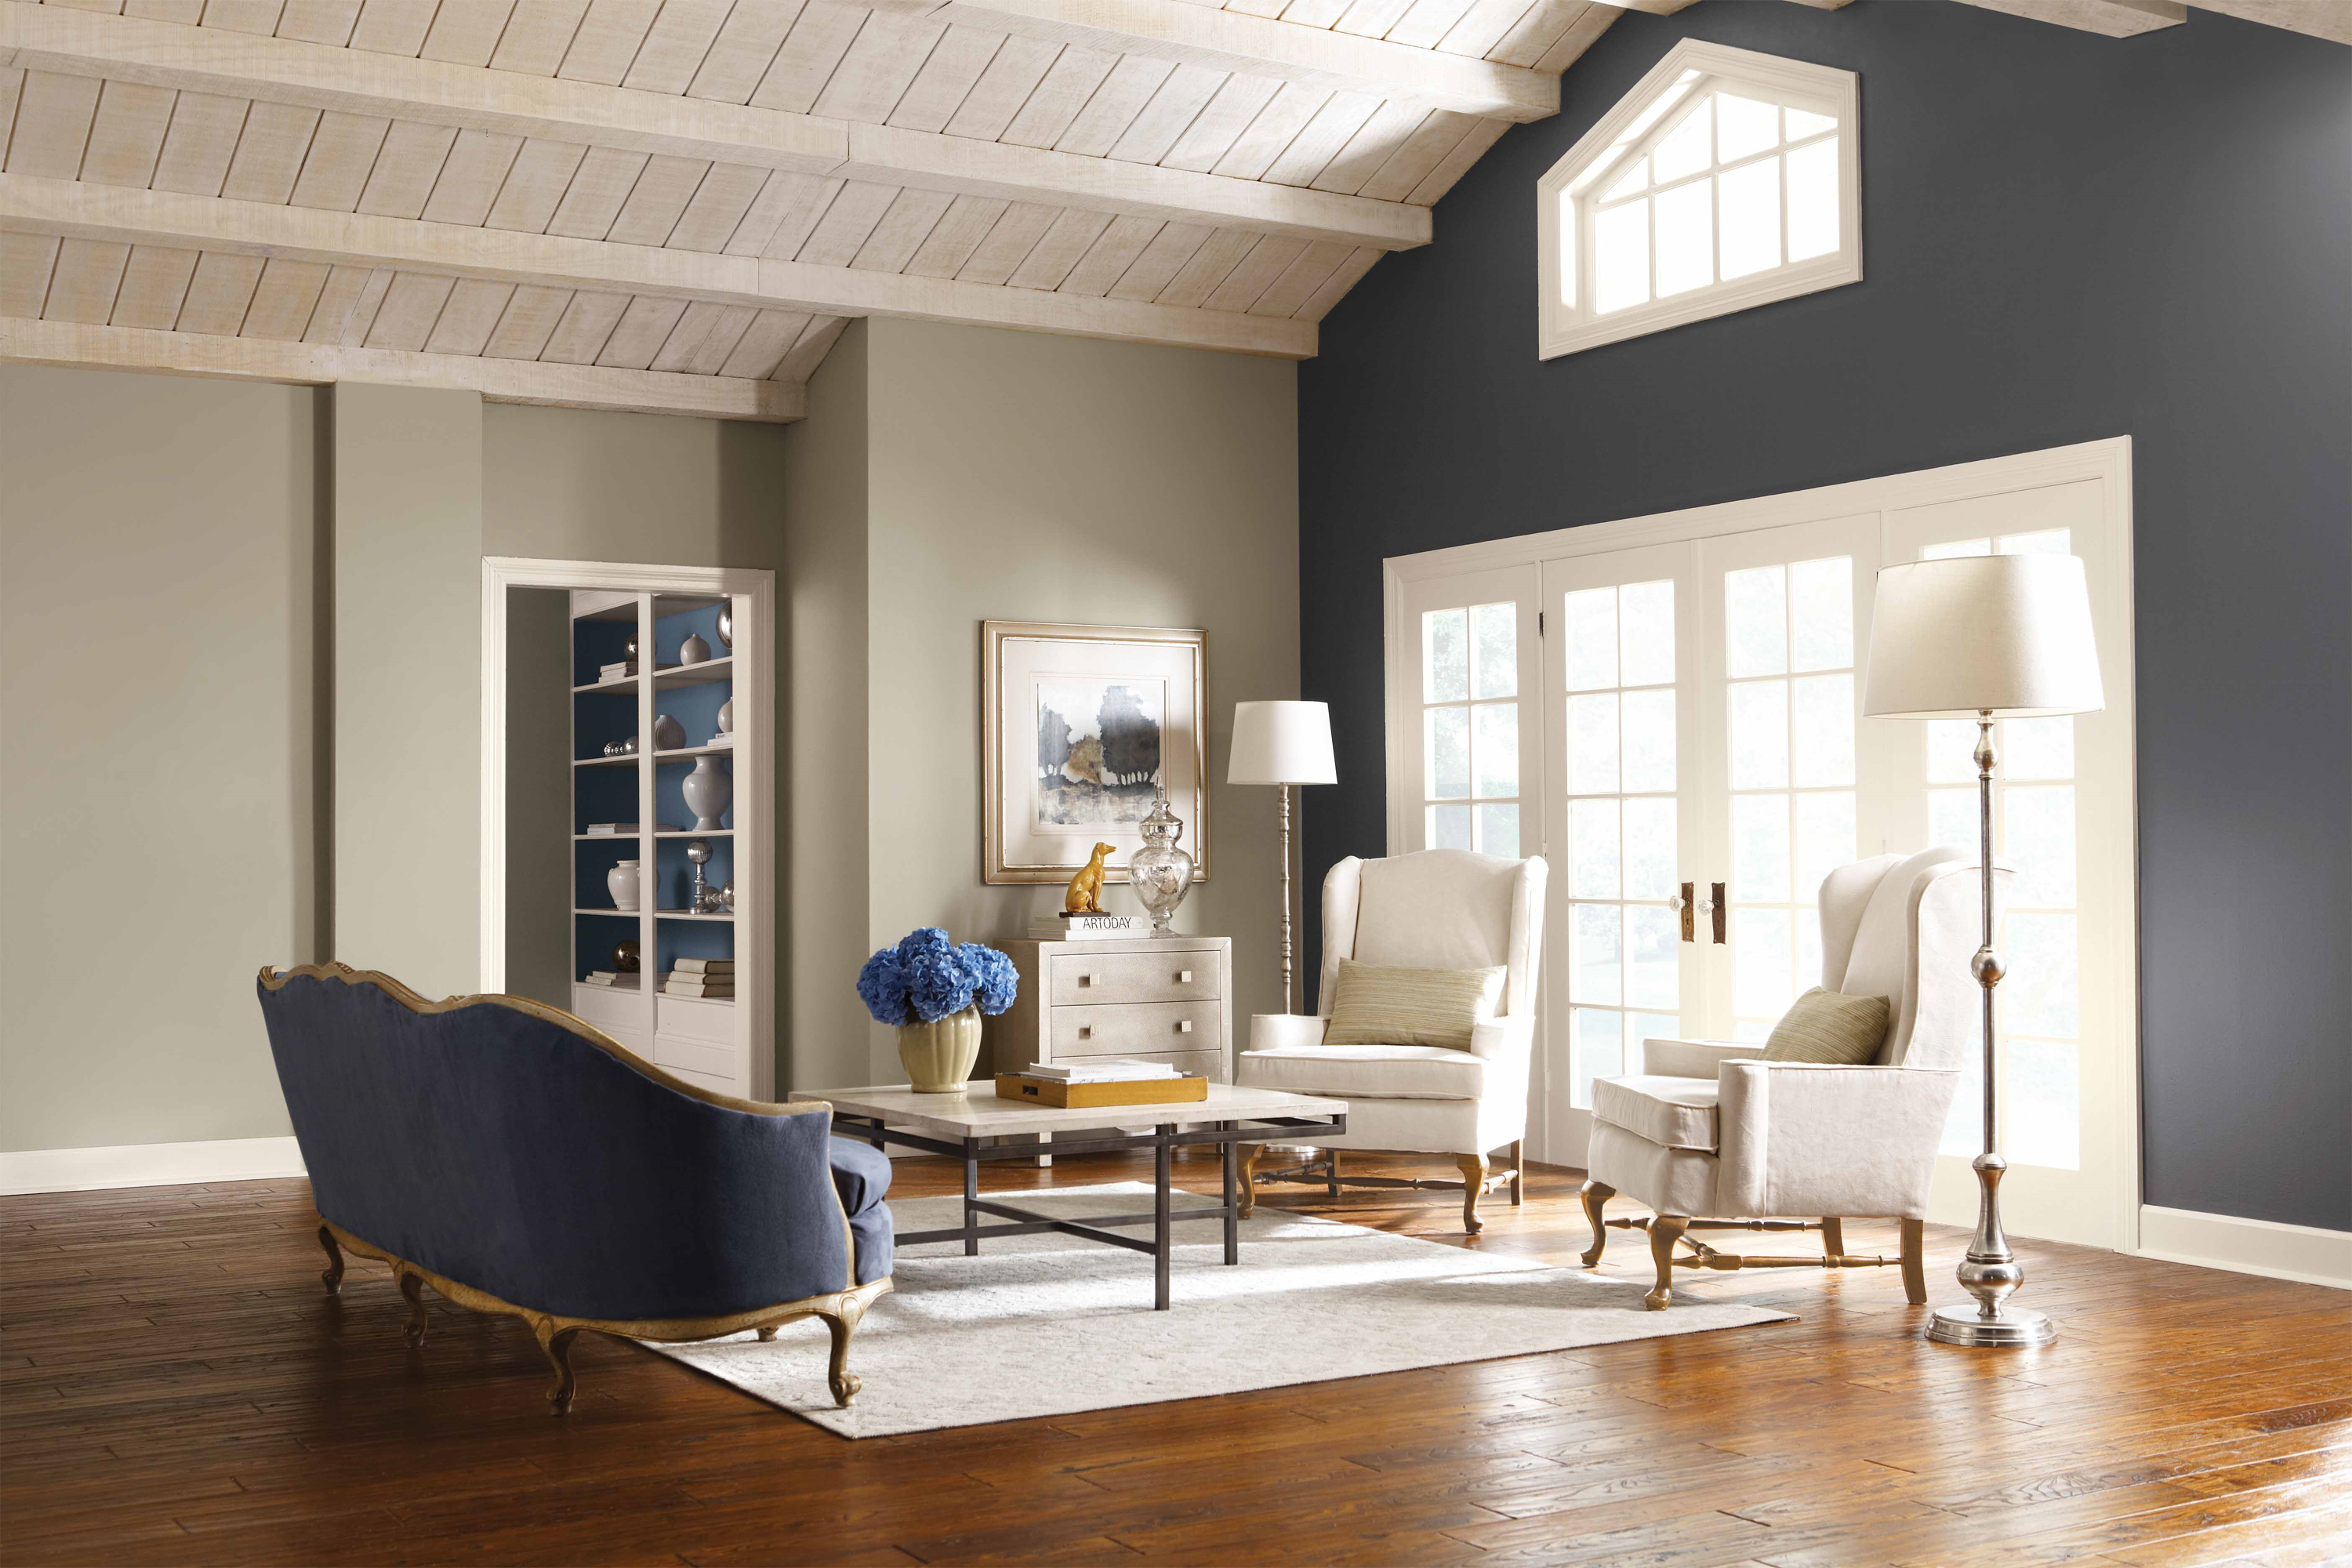 Peppercorn Paint Accent Walls In Living Room Living Room Colors Paint Colors For Living Room #painting #accent #walls #living #room